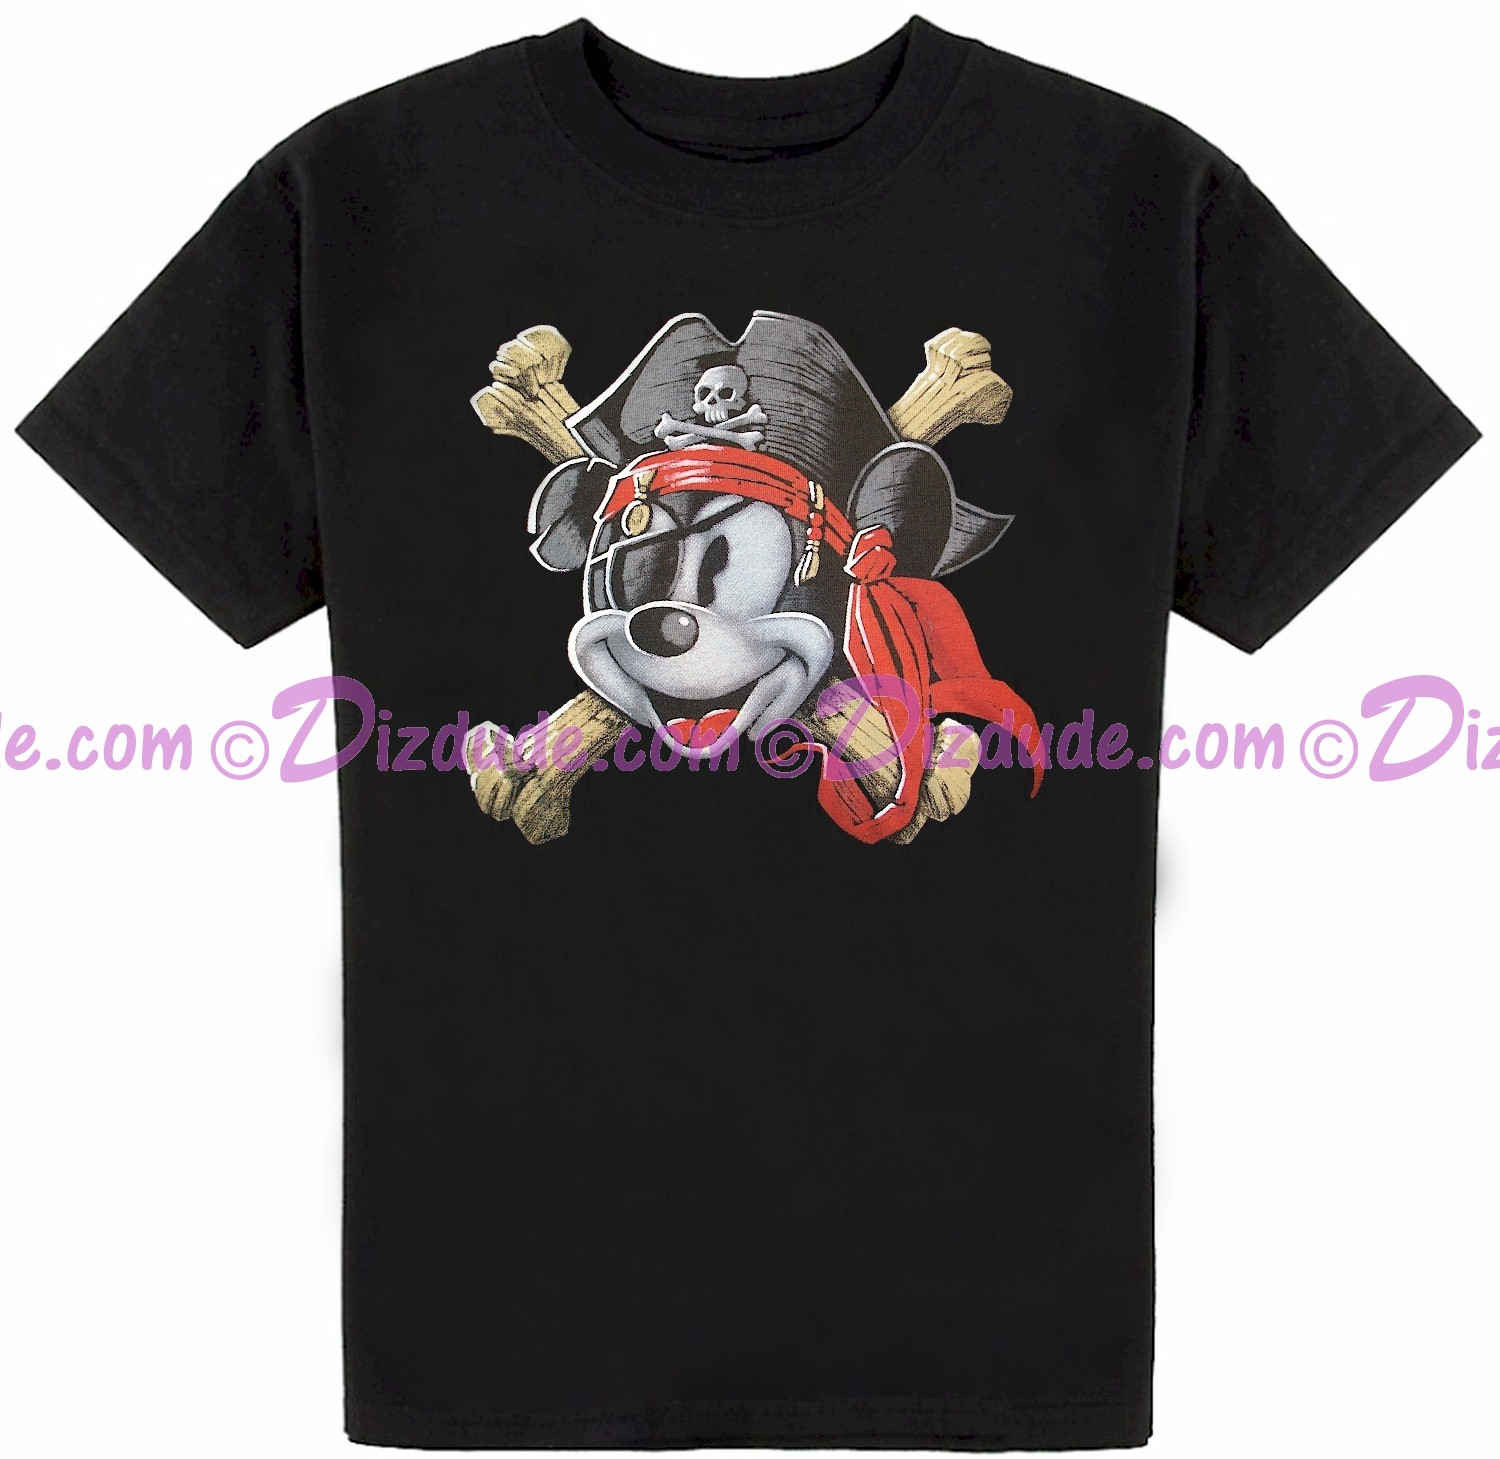 Vintage Disney Pirate Captain Mickey Mouse Youth T-shirt (Tee, Tshirt or T shirt)